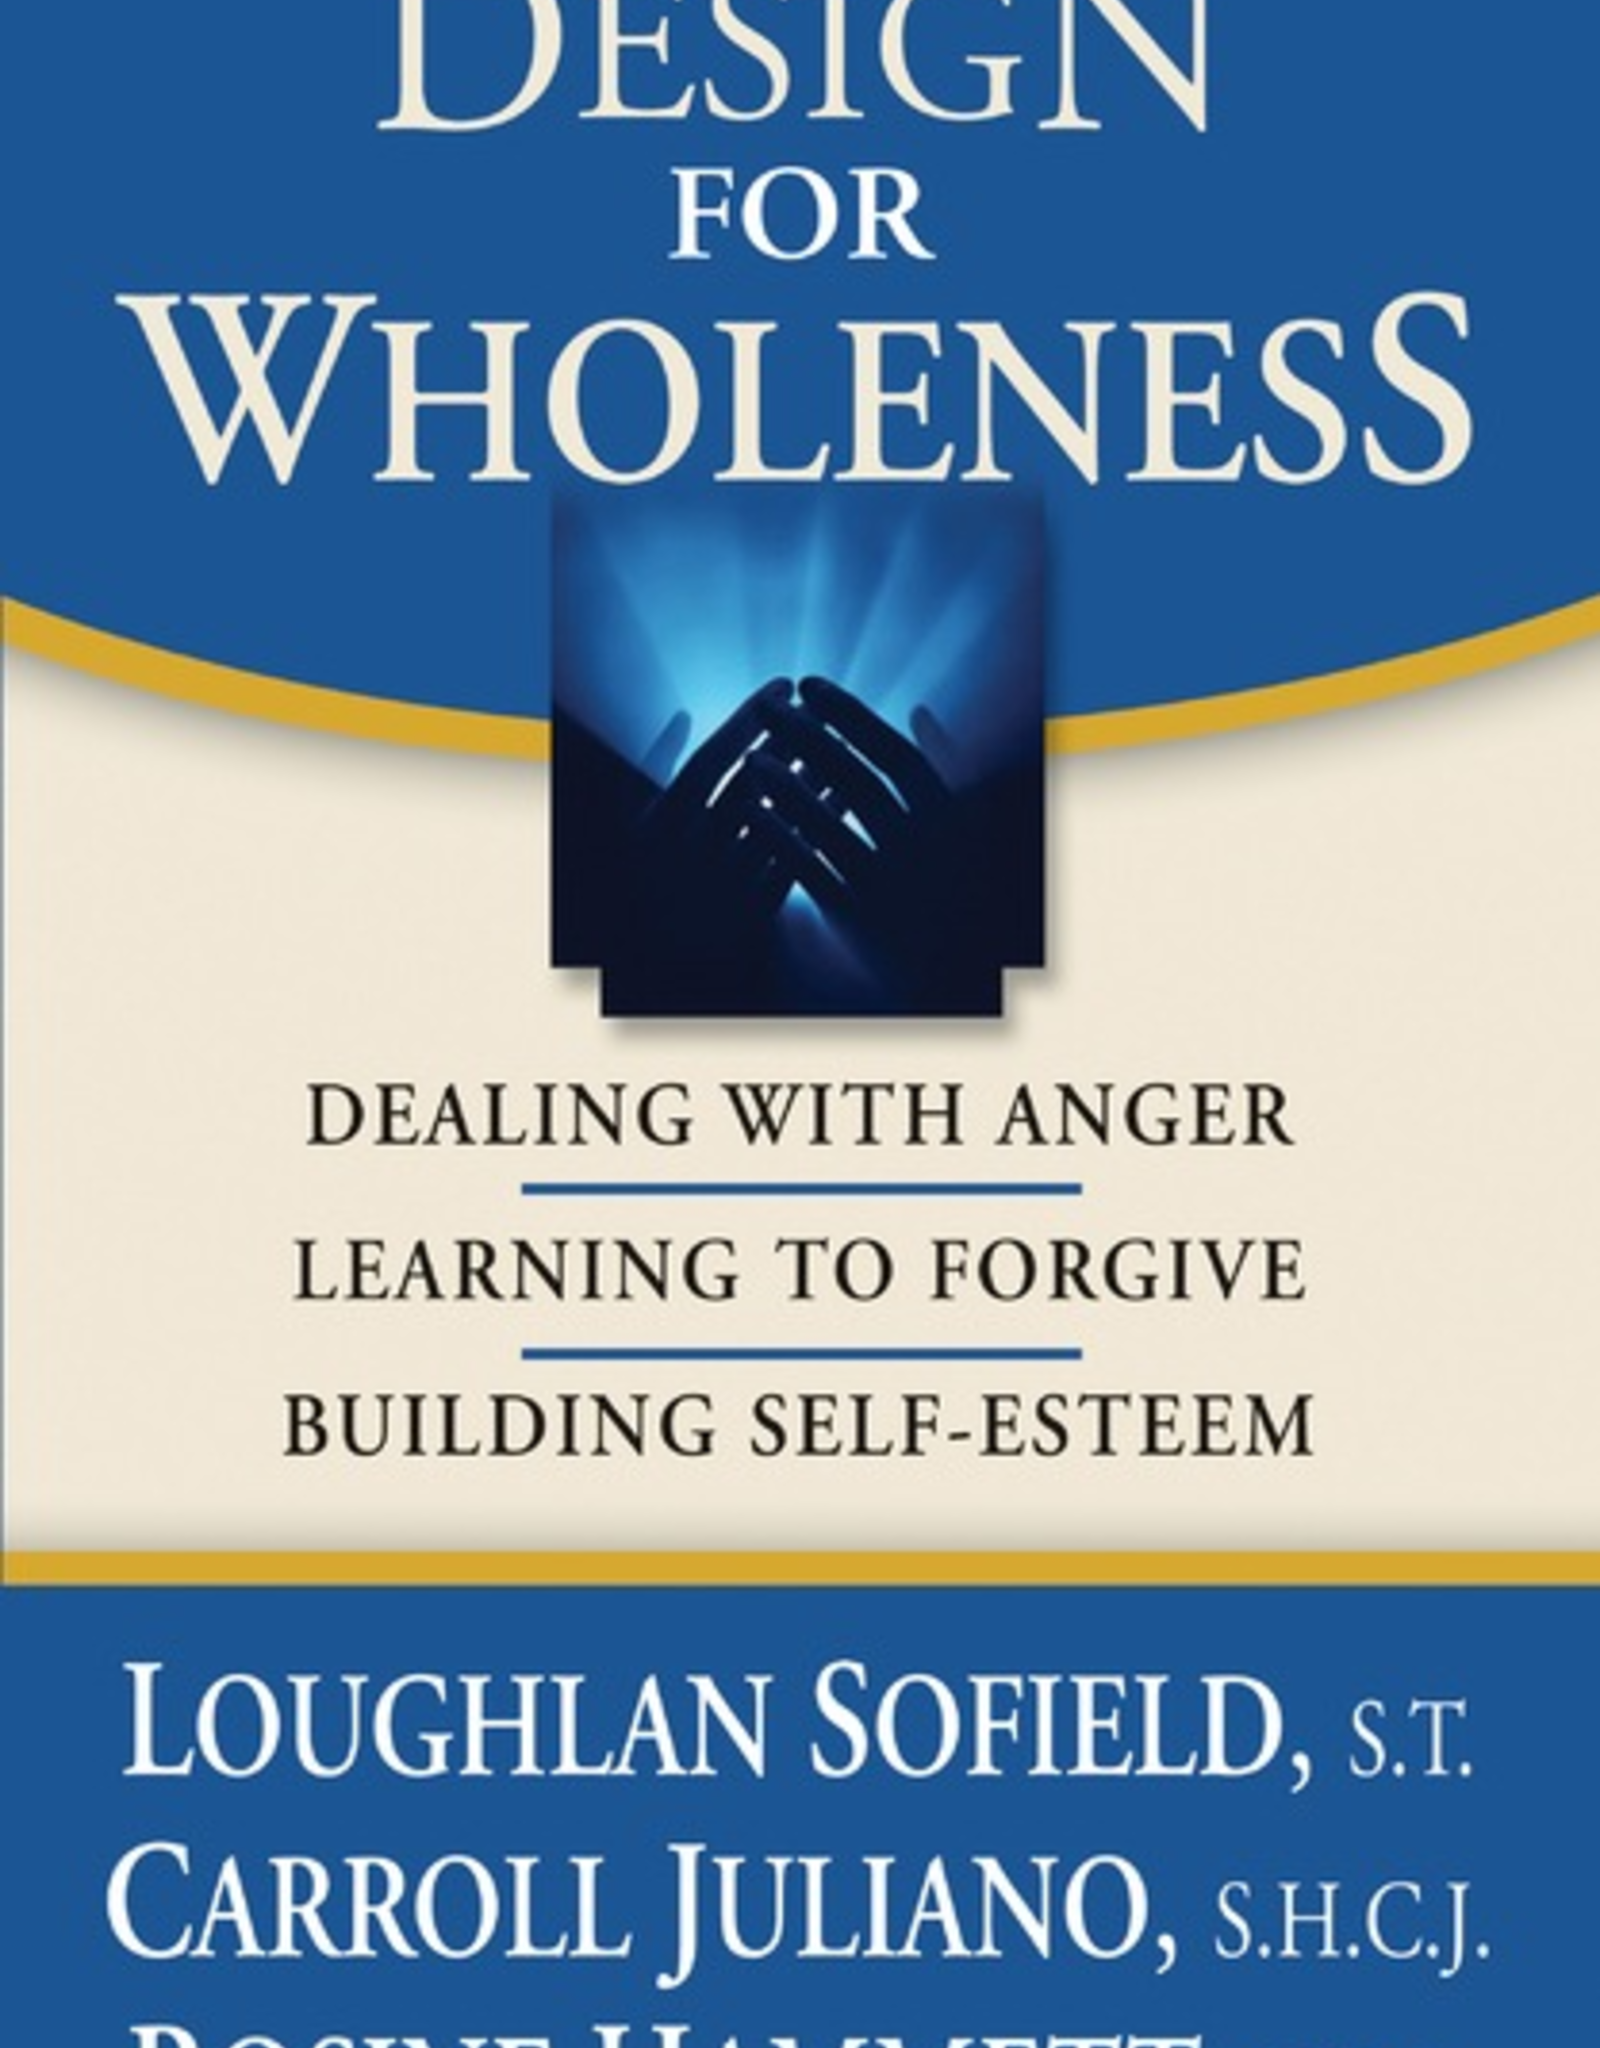 Ave Maria Press Design for Wholeness:  Dealing with Anger, Learning to Forgive, Building Self-Esteem, by Loughlin Sofield, Carroll Juliano and Rosine Hammett (paperback)